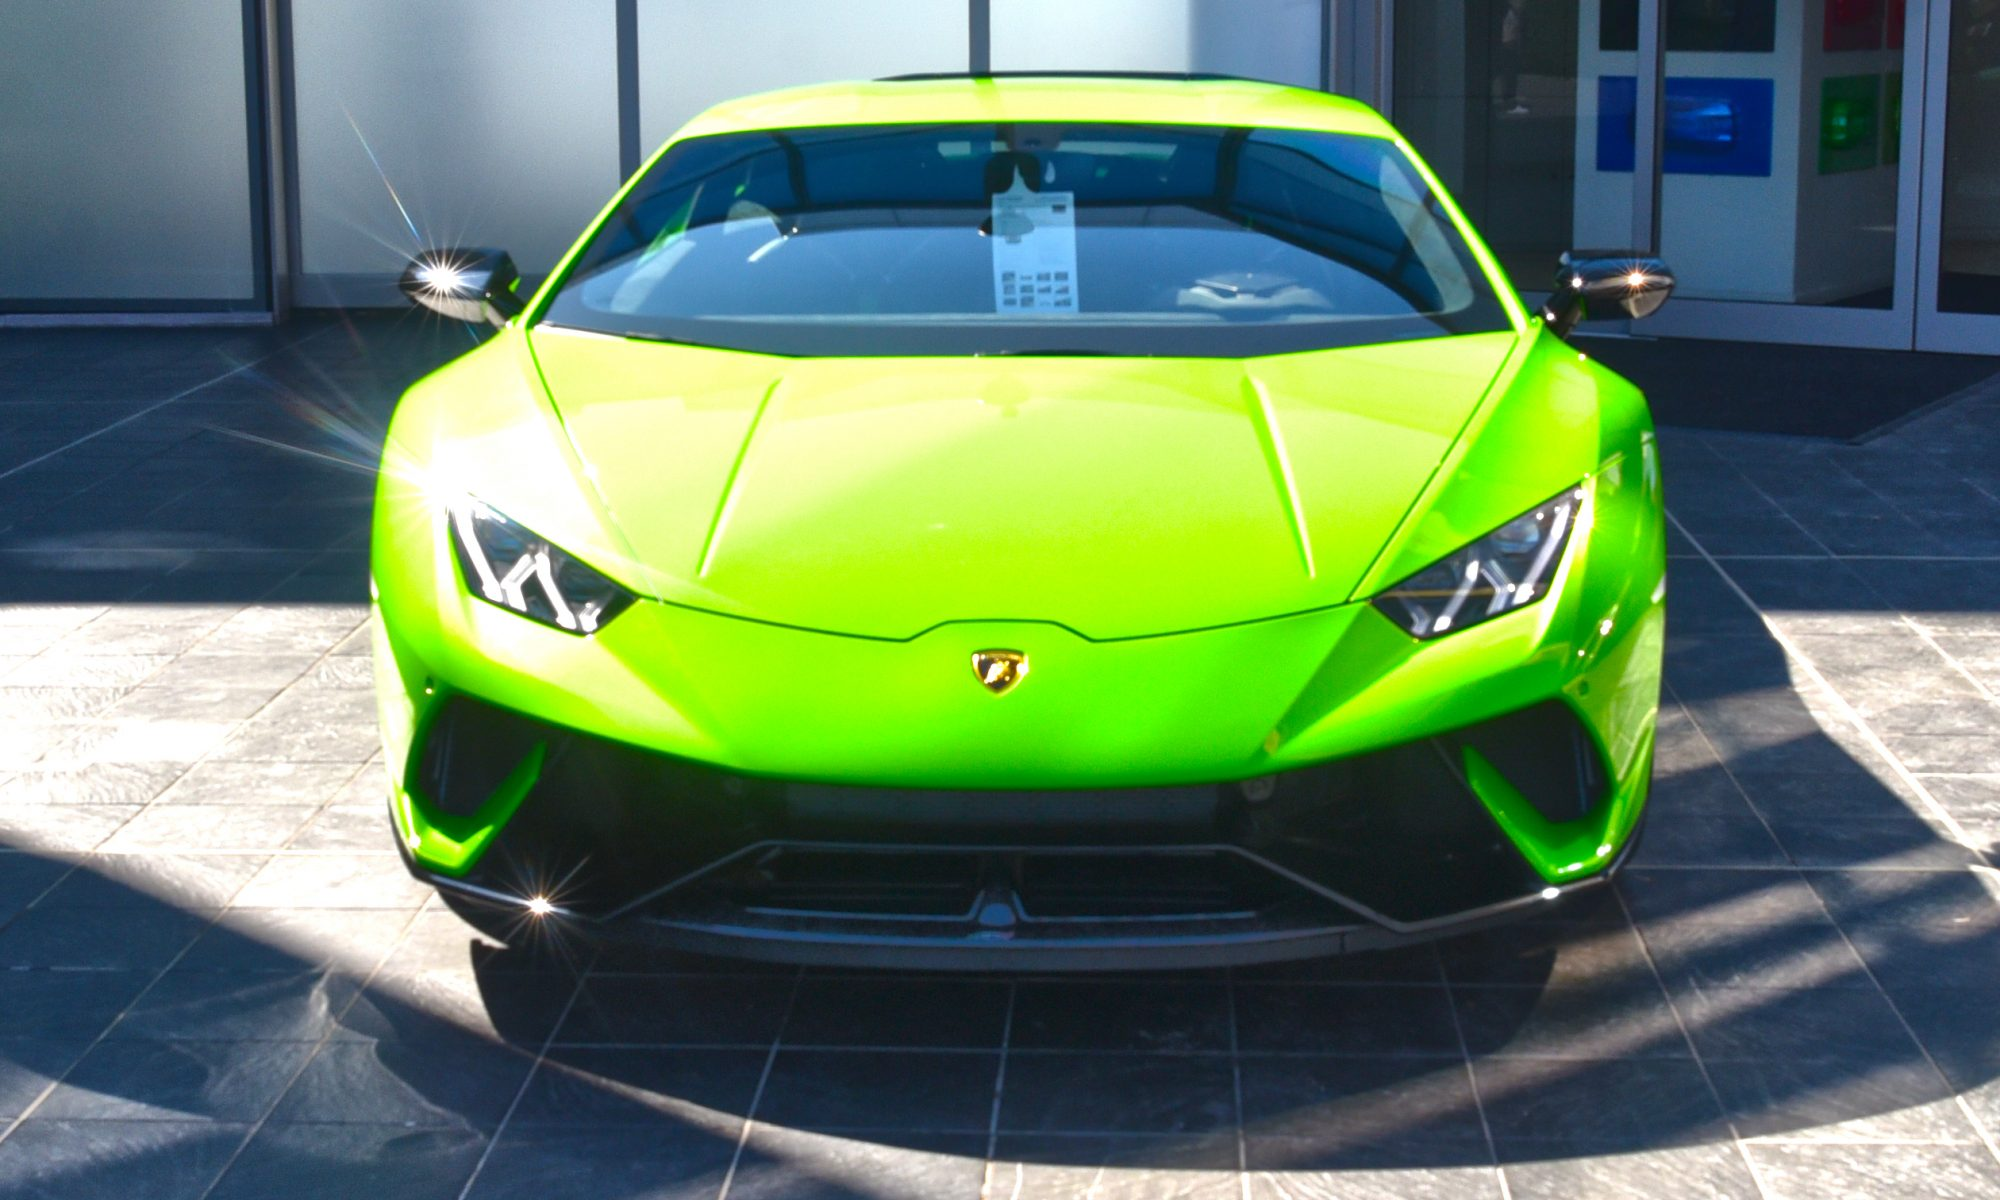 BMC Air Filters For Lamborghini Vehicles